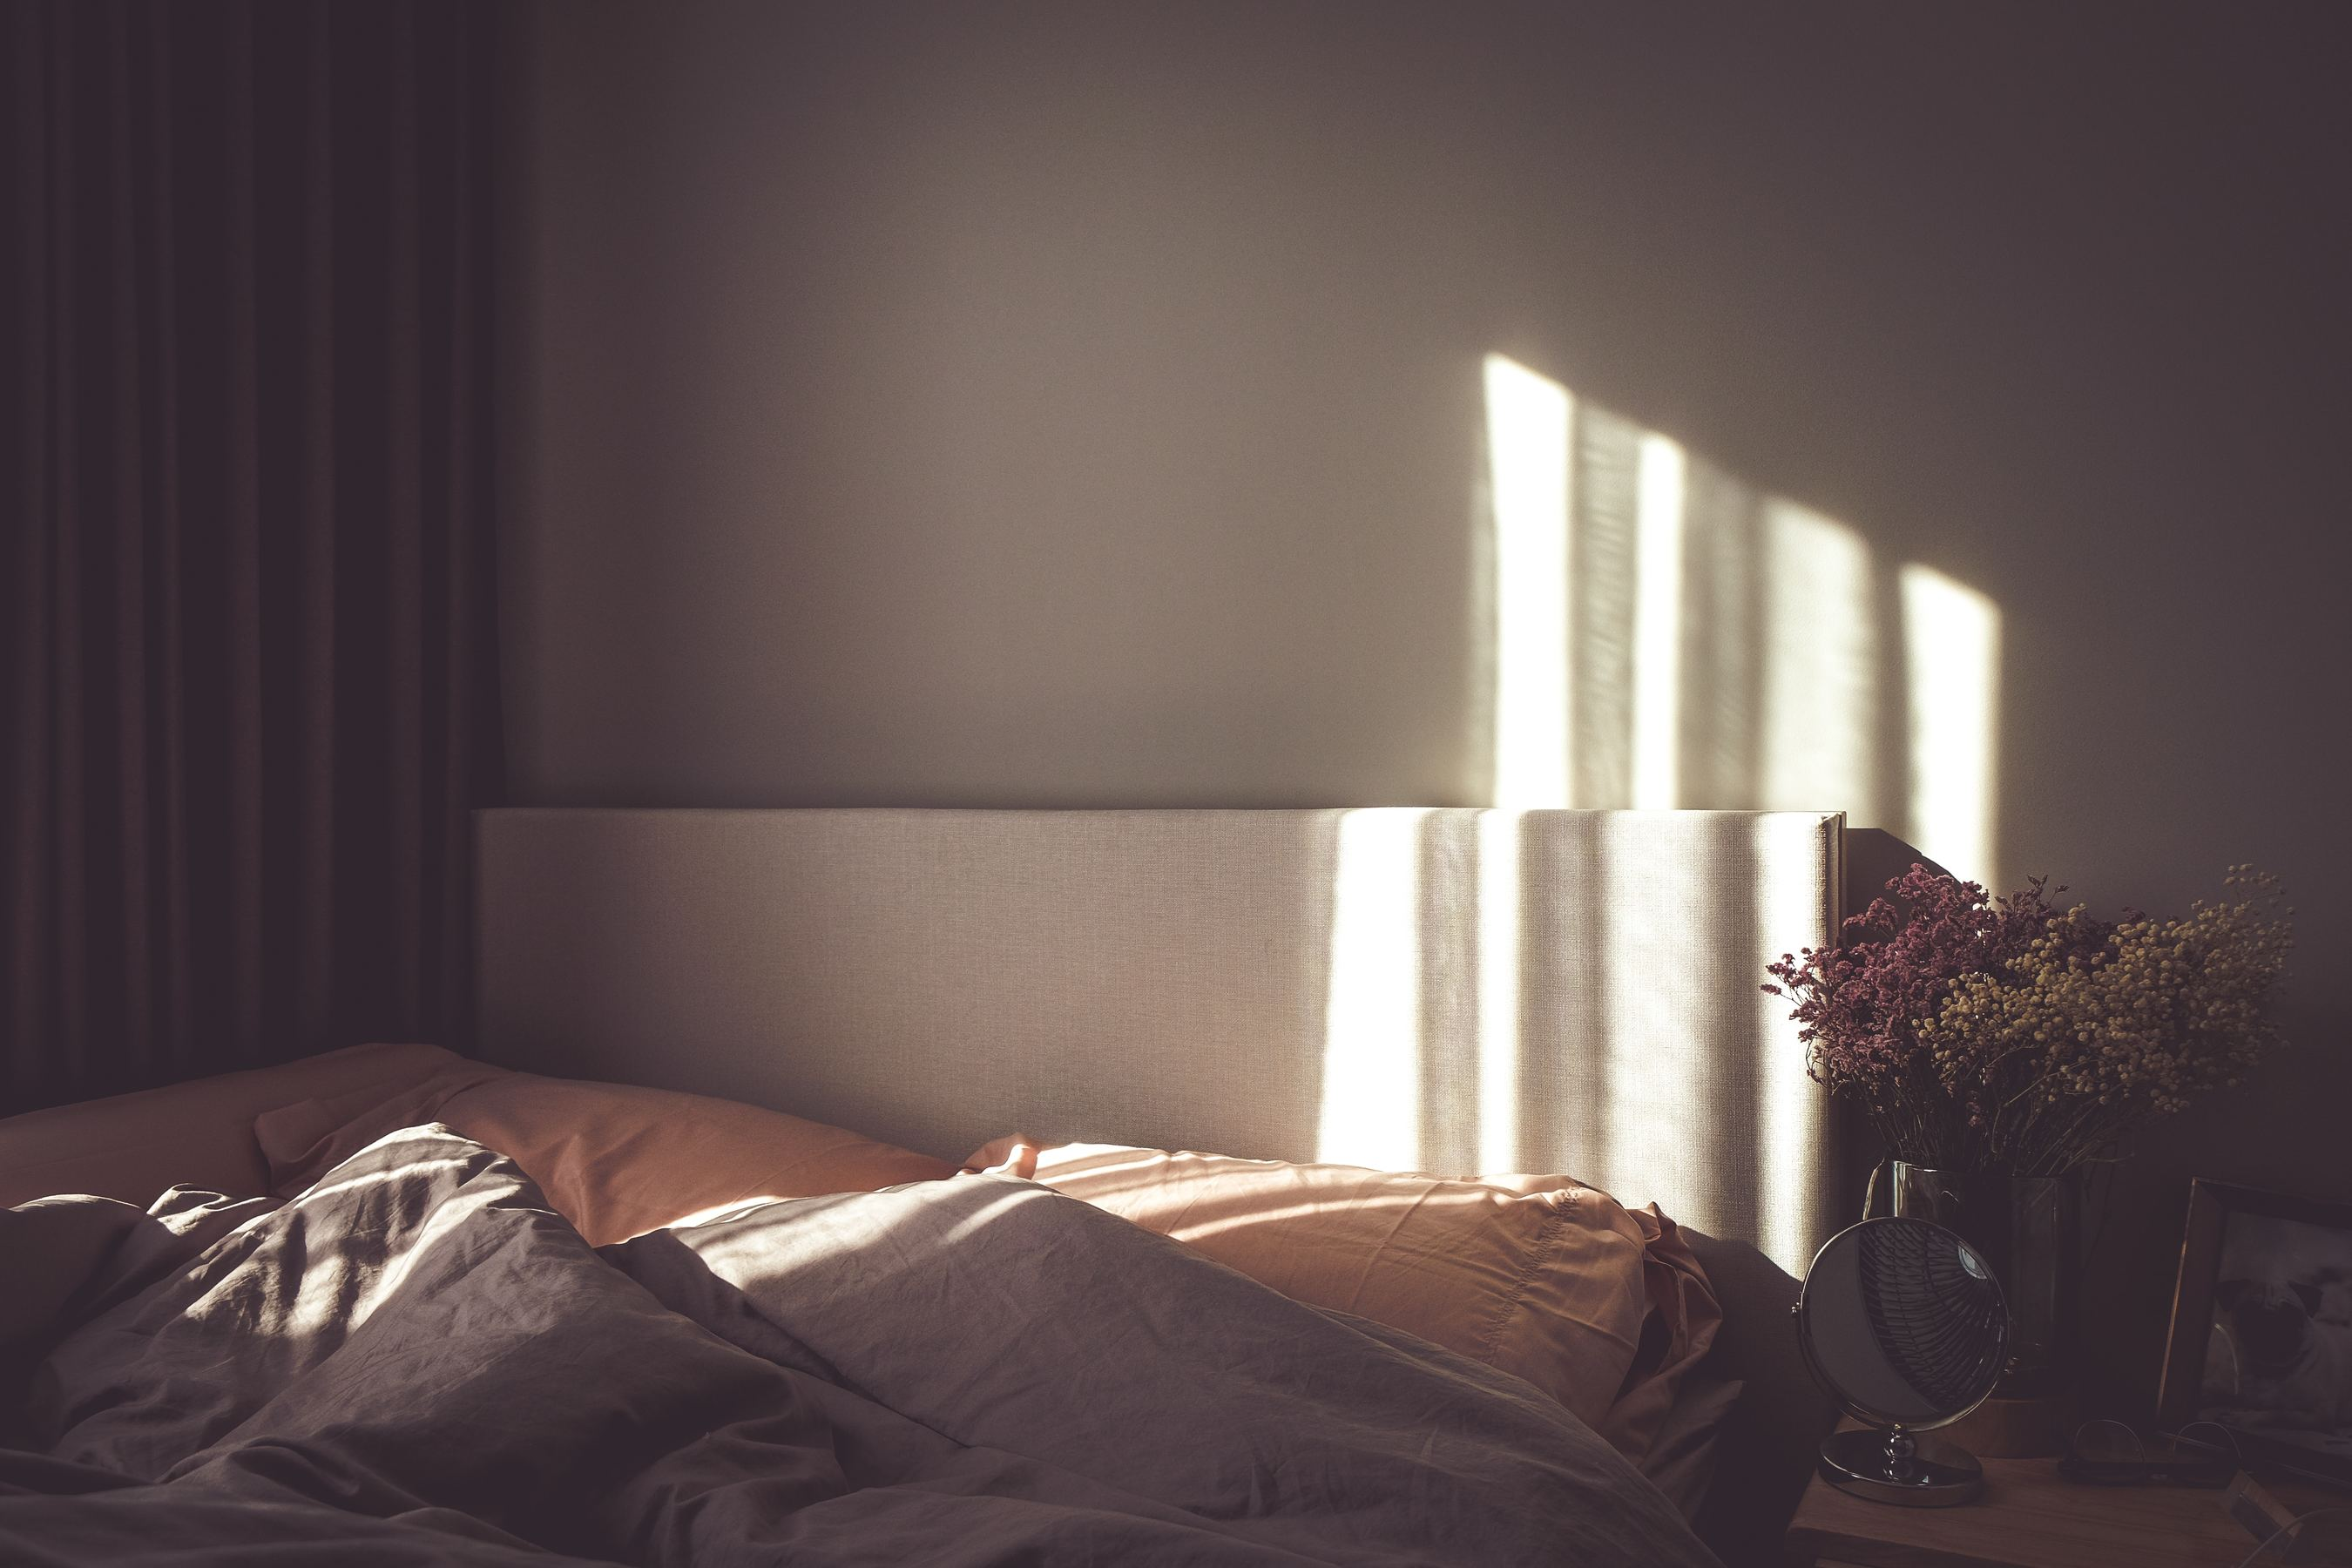 Cozy bed on a lay Sunday morning, the sun rise just starting to pour in